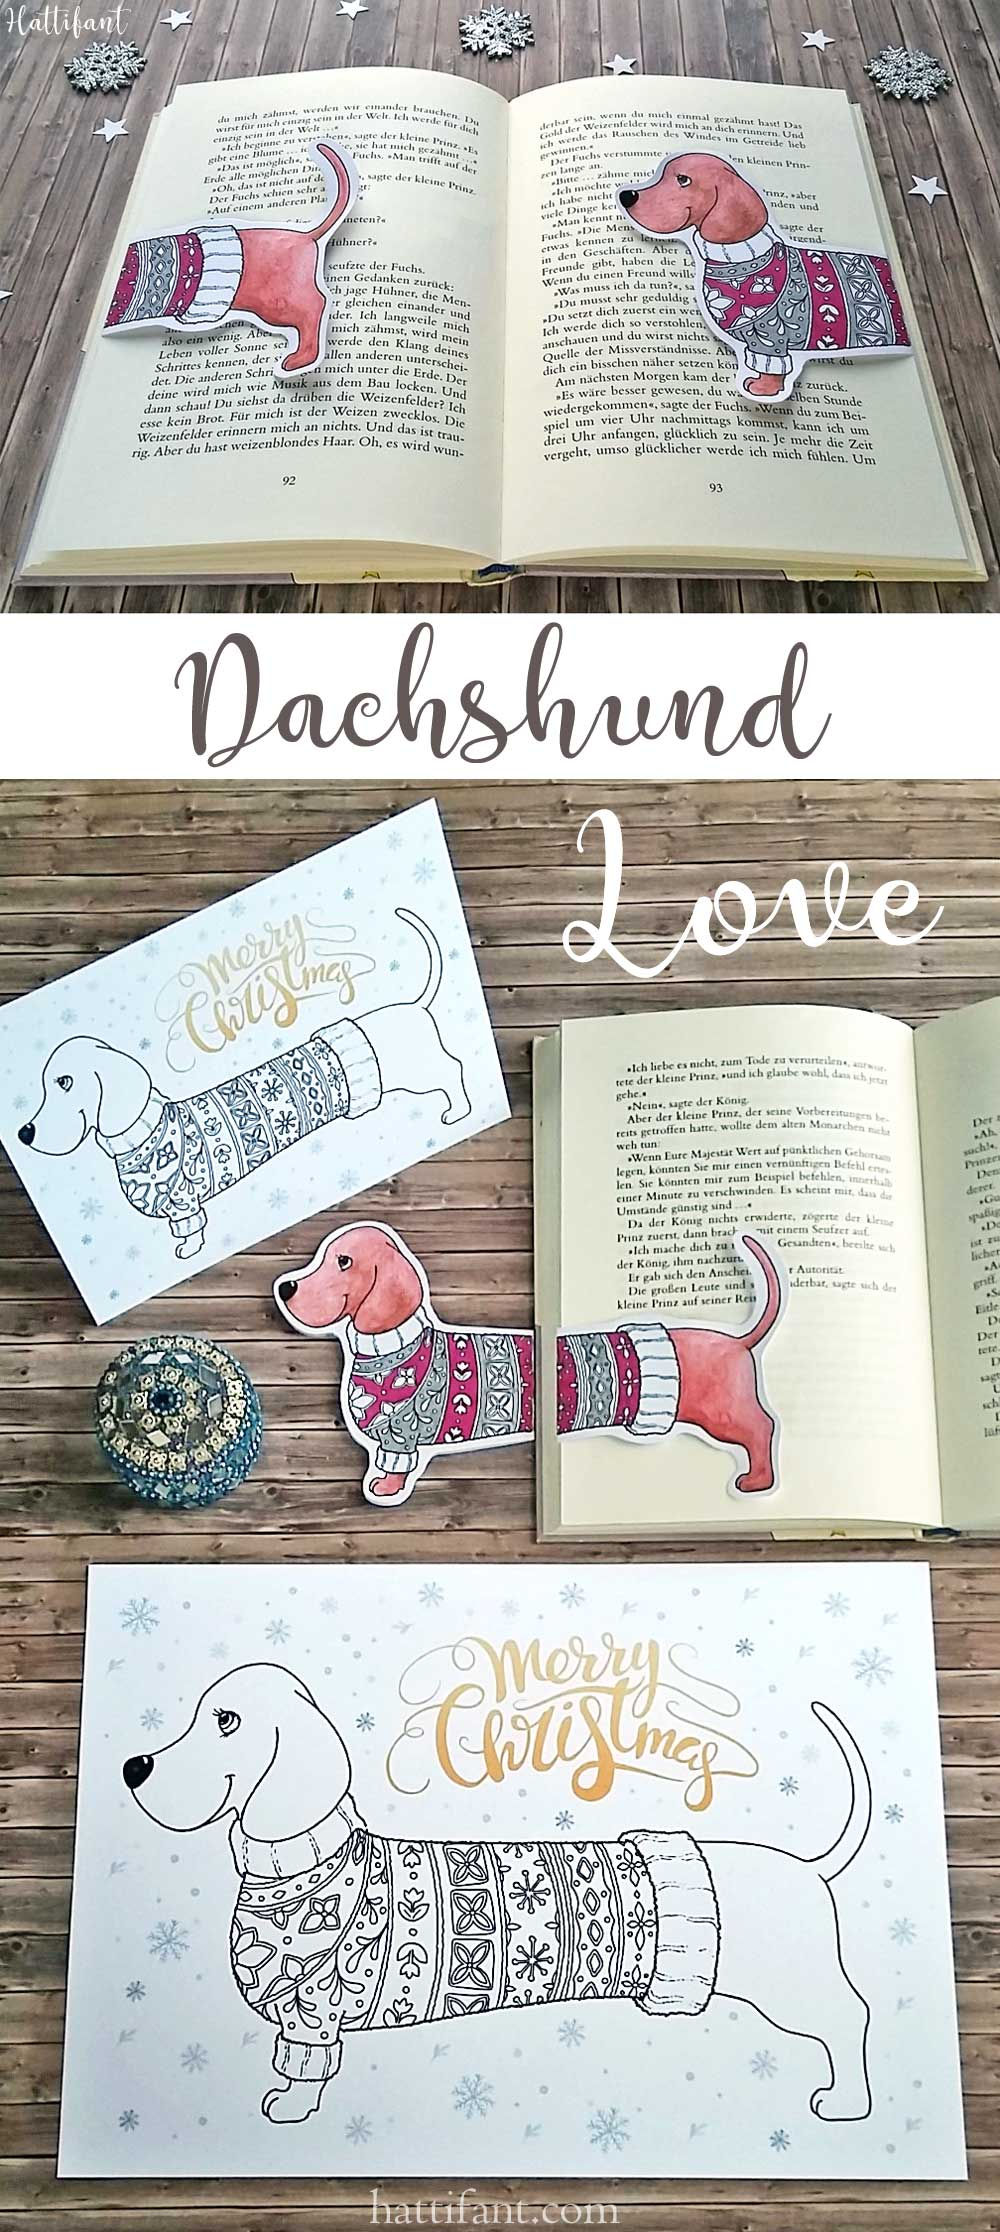 Hattifant's Dachshund Coloring Papercraft and bookmark